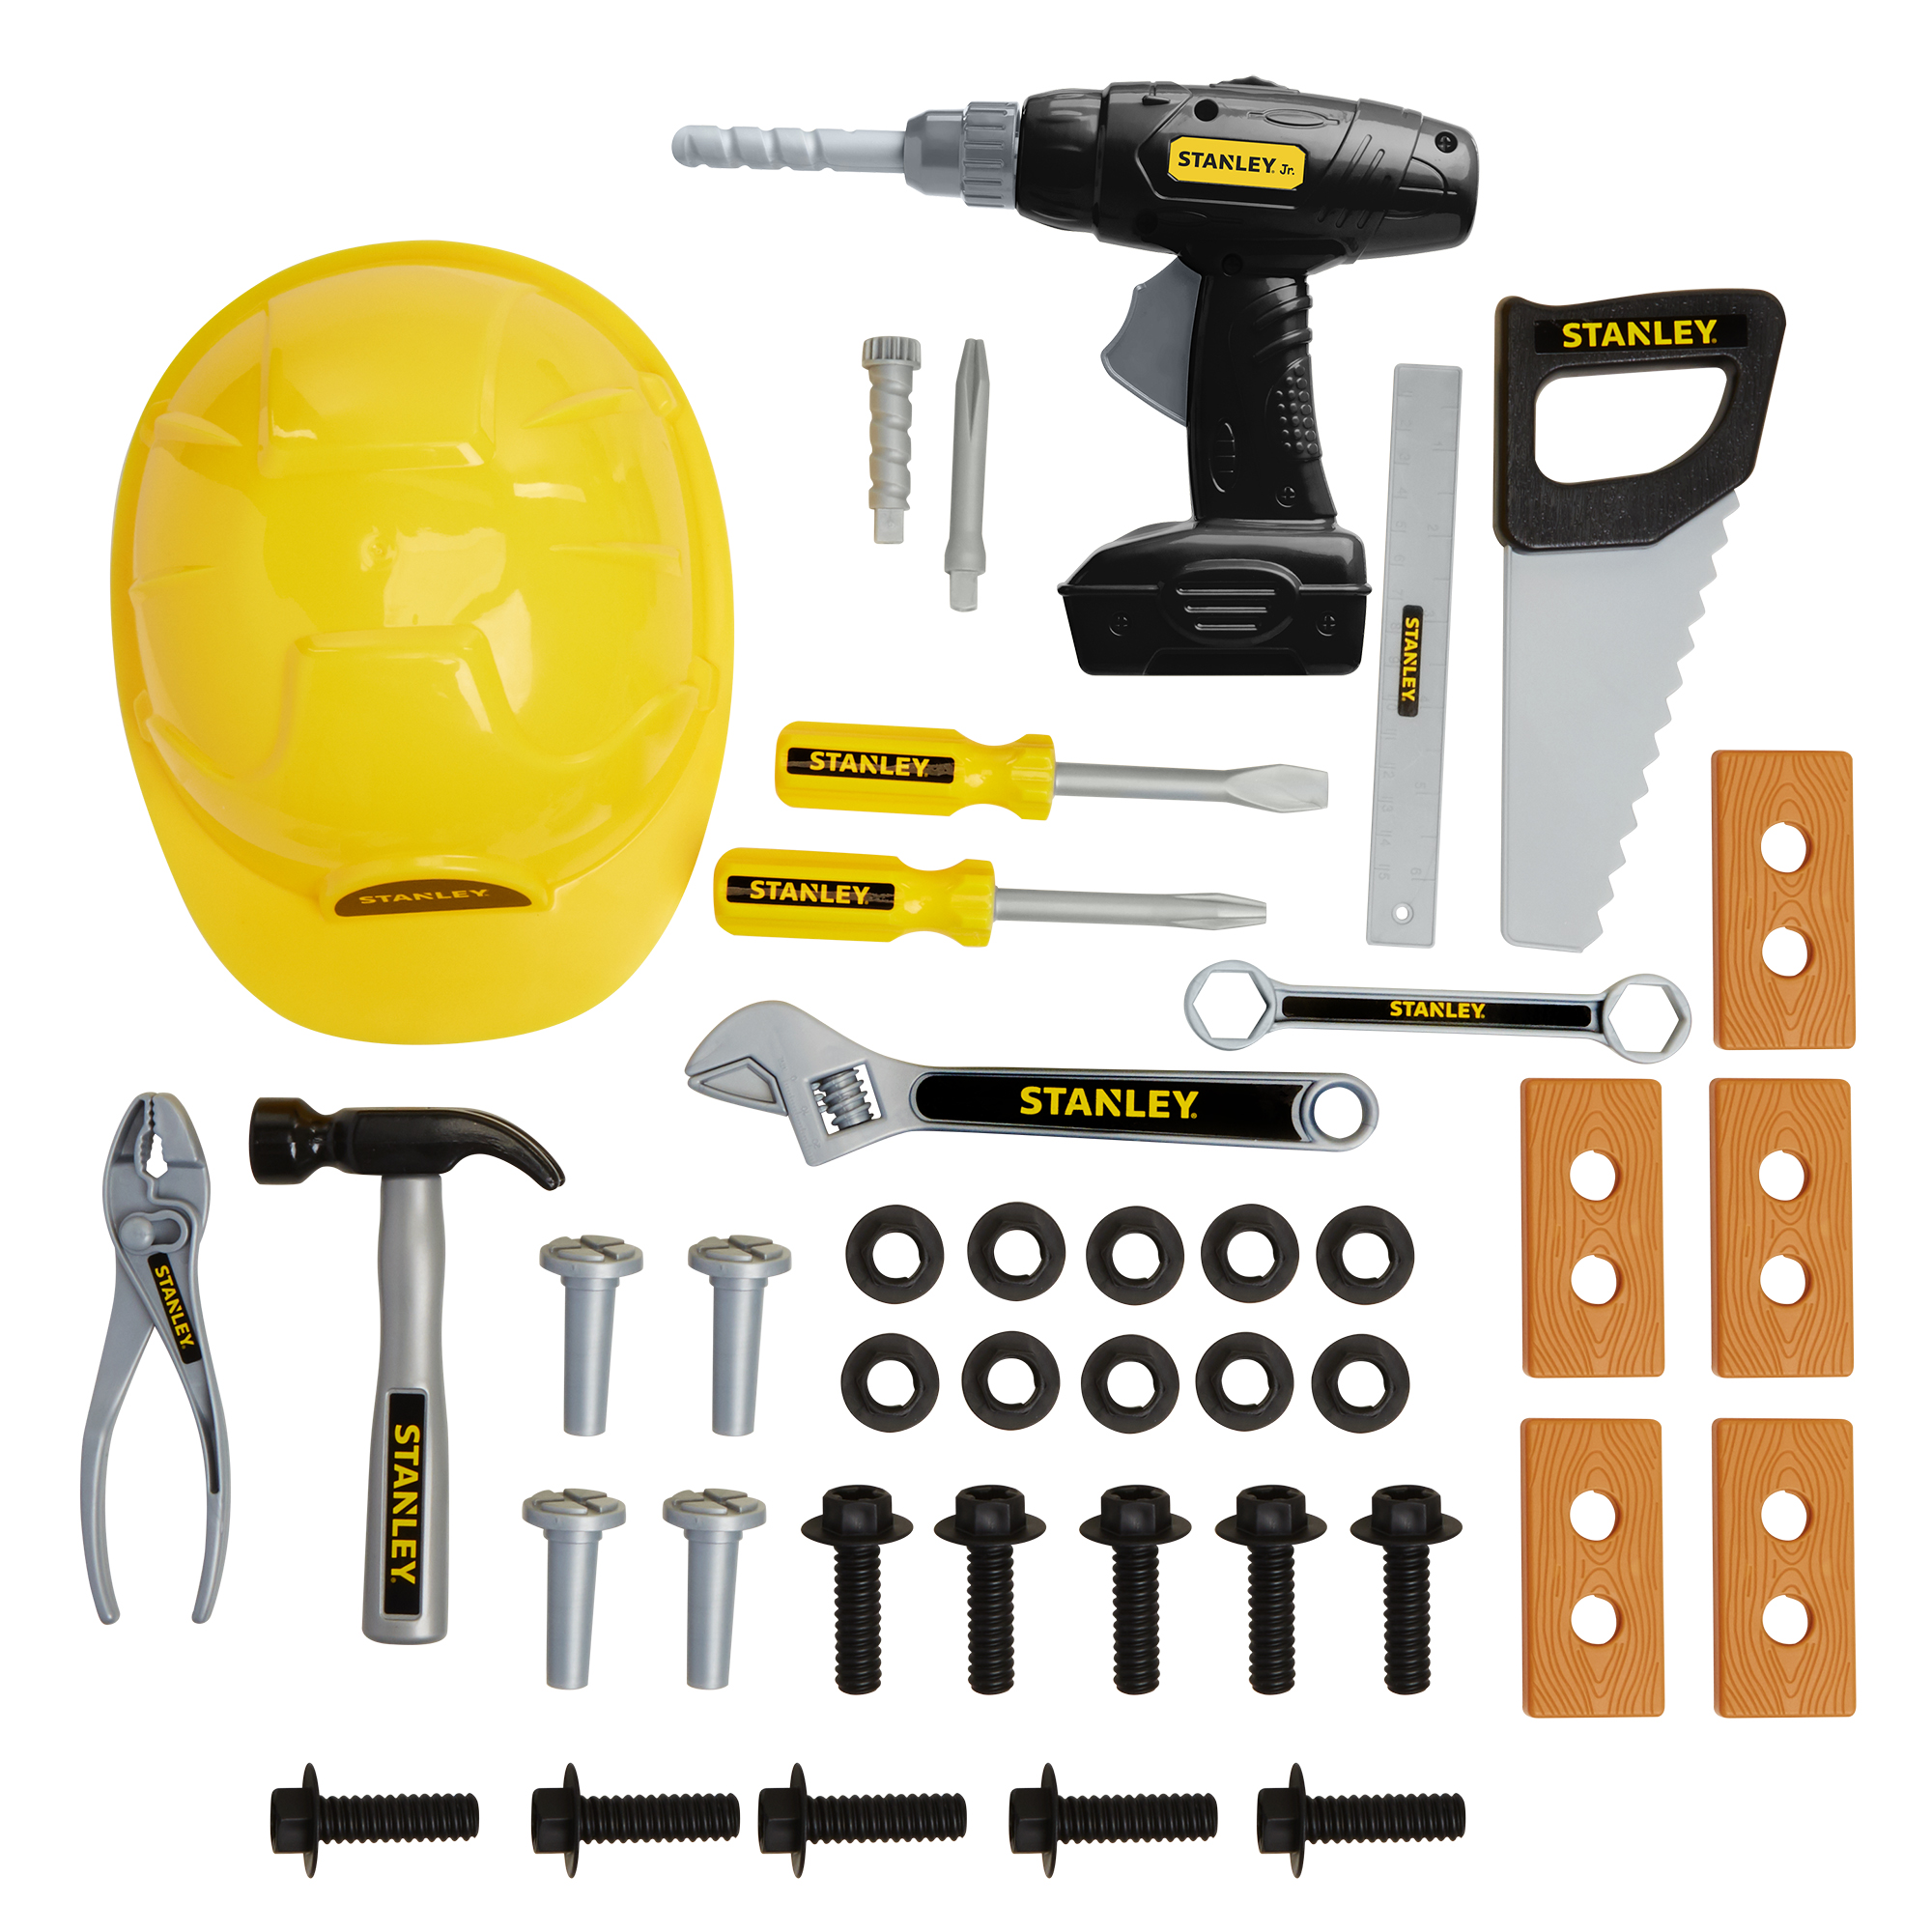 STANLEY™ Jr Mega Tool Set